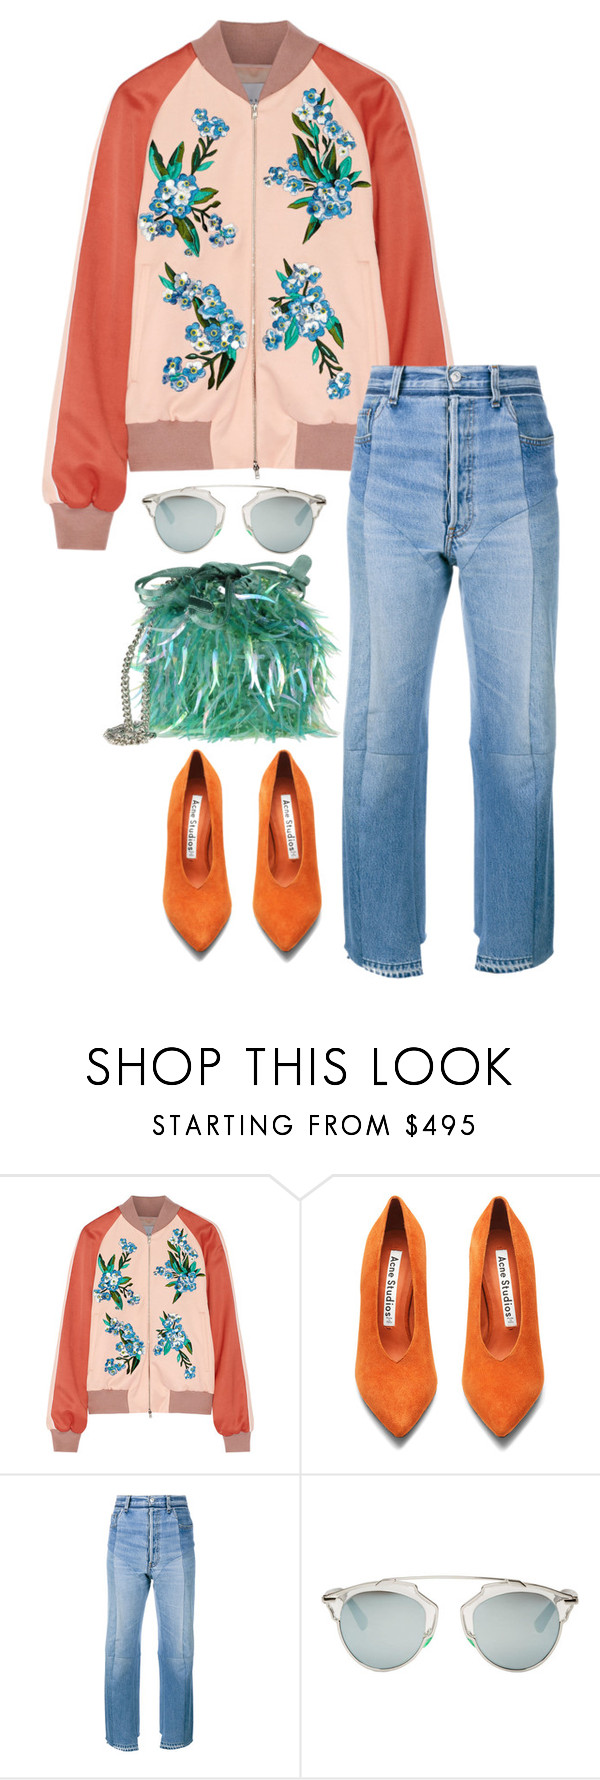 """""""Casually."""" by ideasonthebrain ❤ liked on Polyvore featuring Jonathan Saunders, Acne Studios, Vetements, Christian Dior and Alberta Ferretti"""